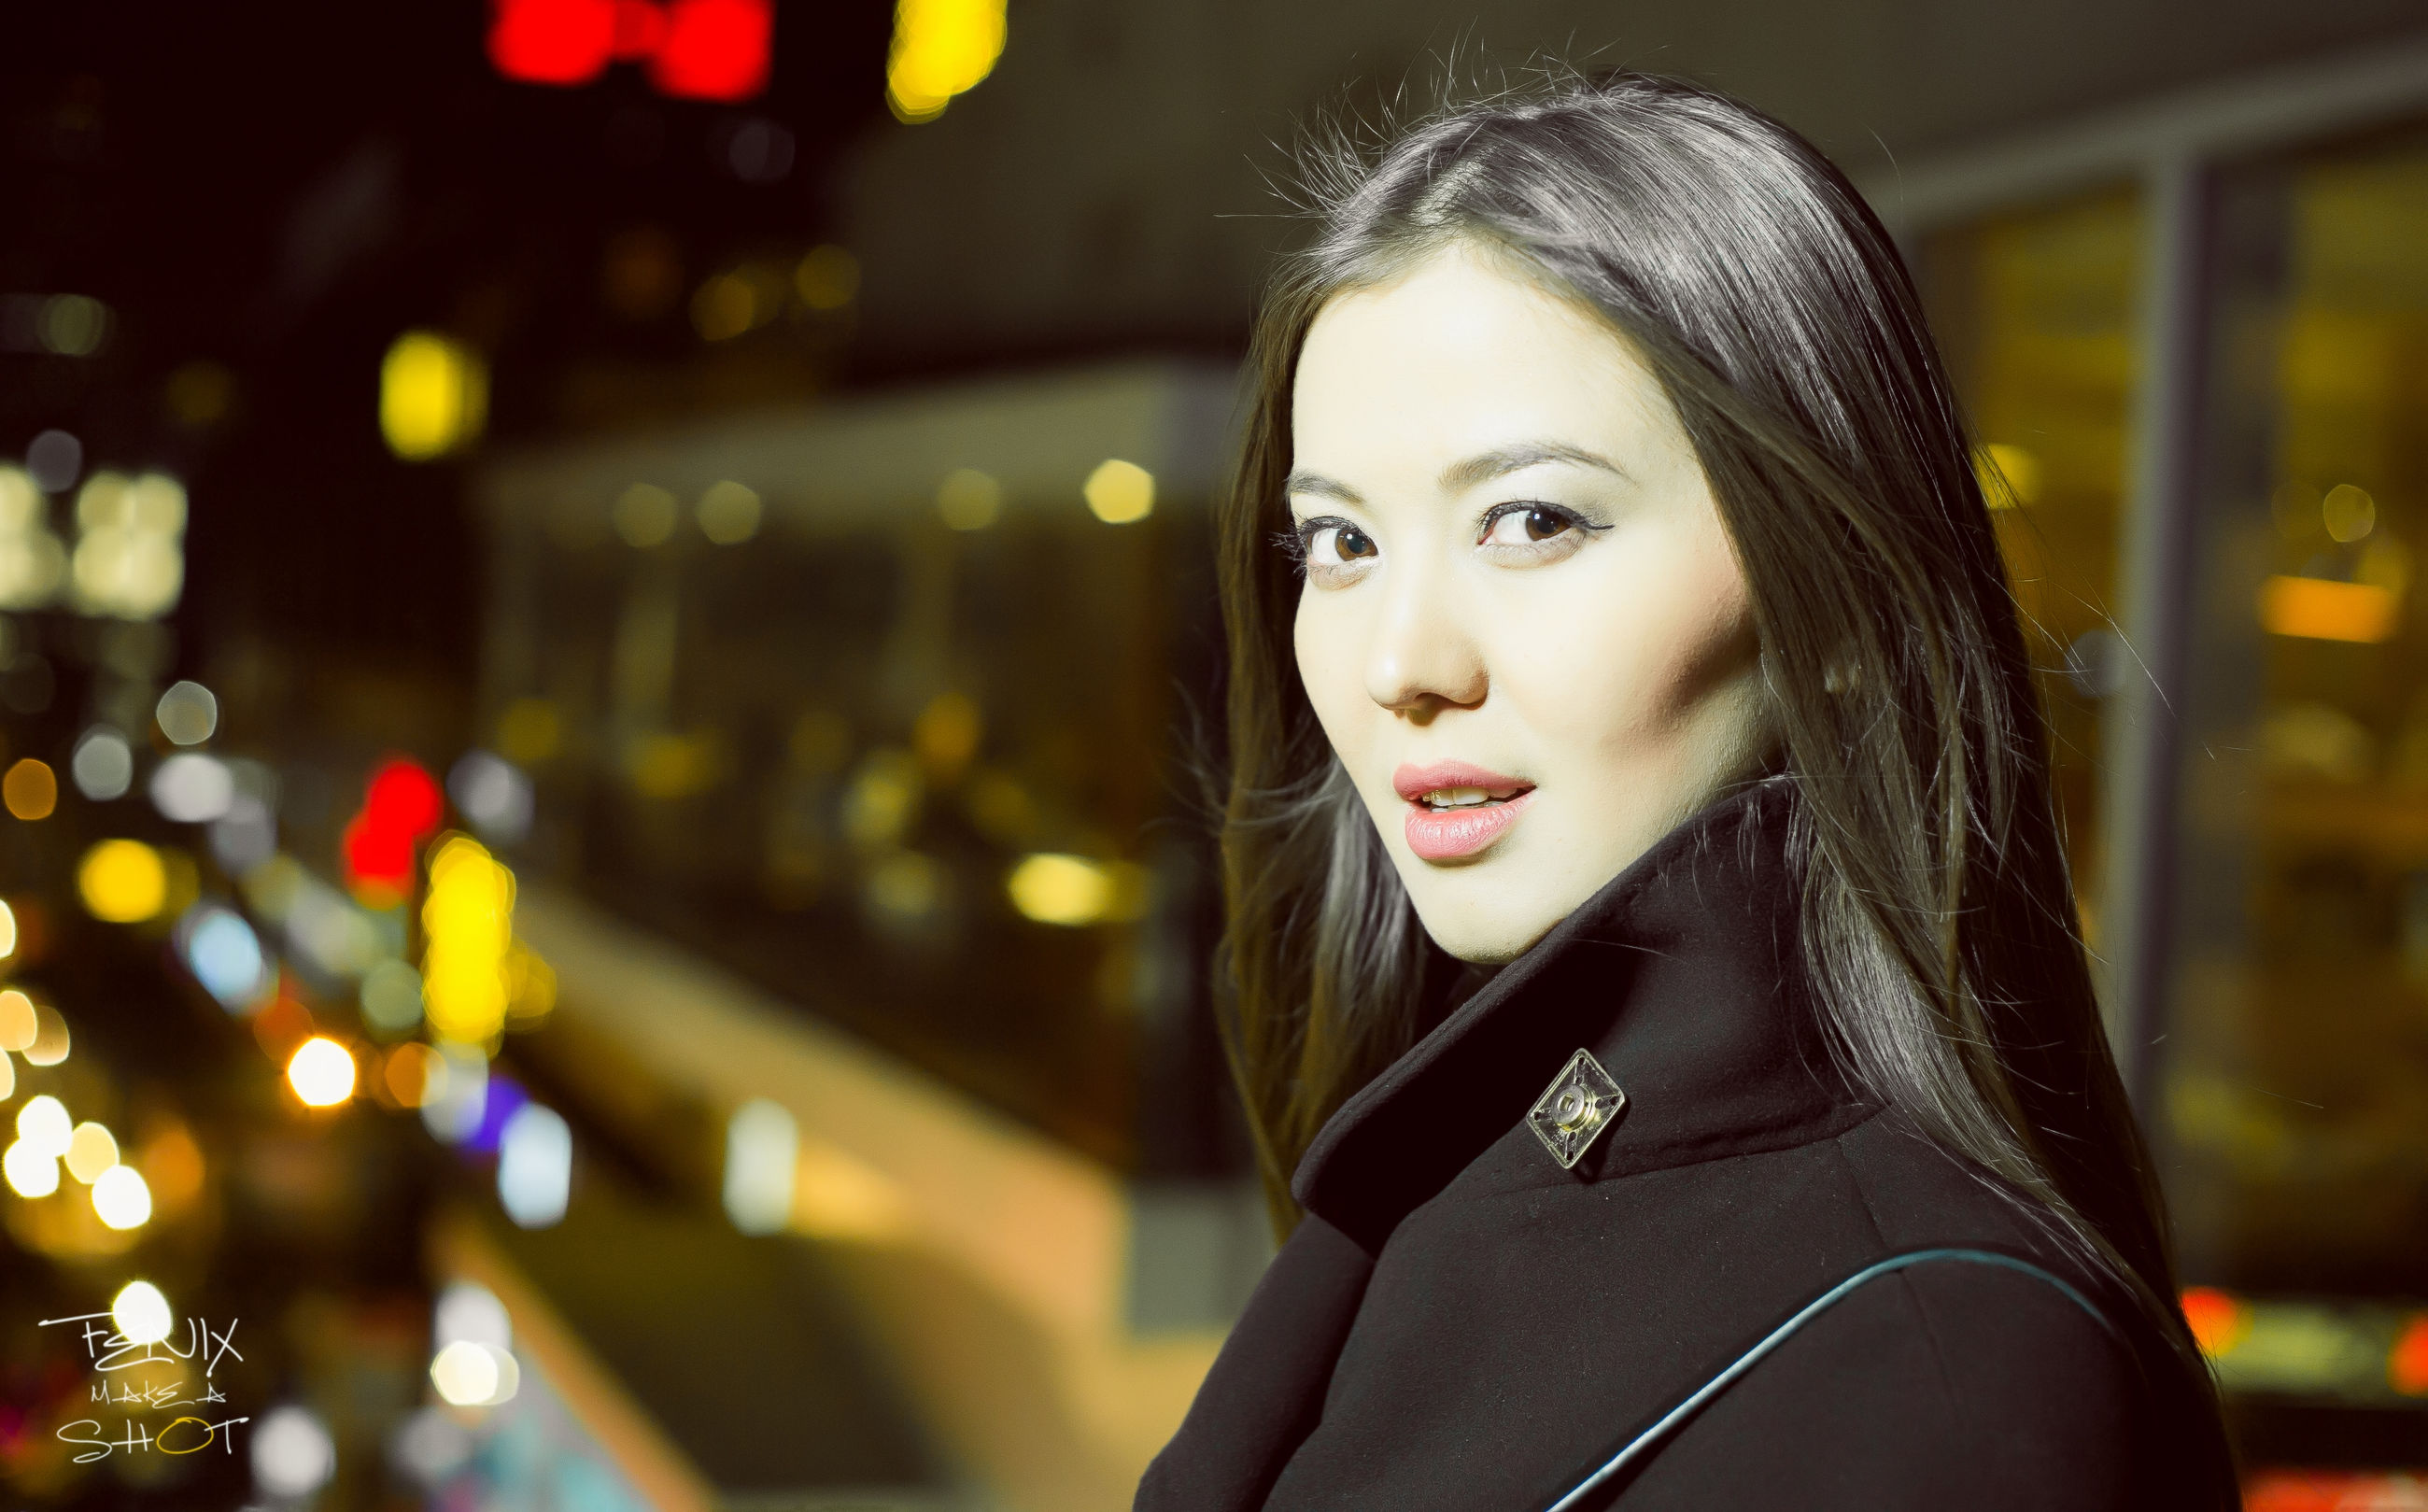 young adult, lifestyles, portrait, looking at camera, person, focus on foreground, young women, front view, casual clothing, leisure activity, headshot, smiling, head and shoulders, illuminated, night, standing